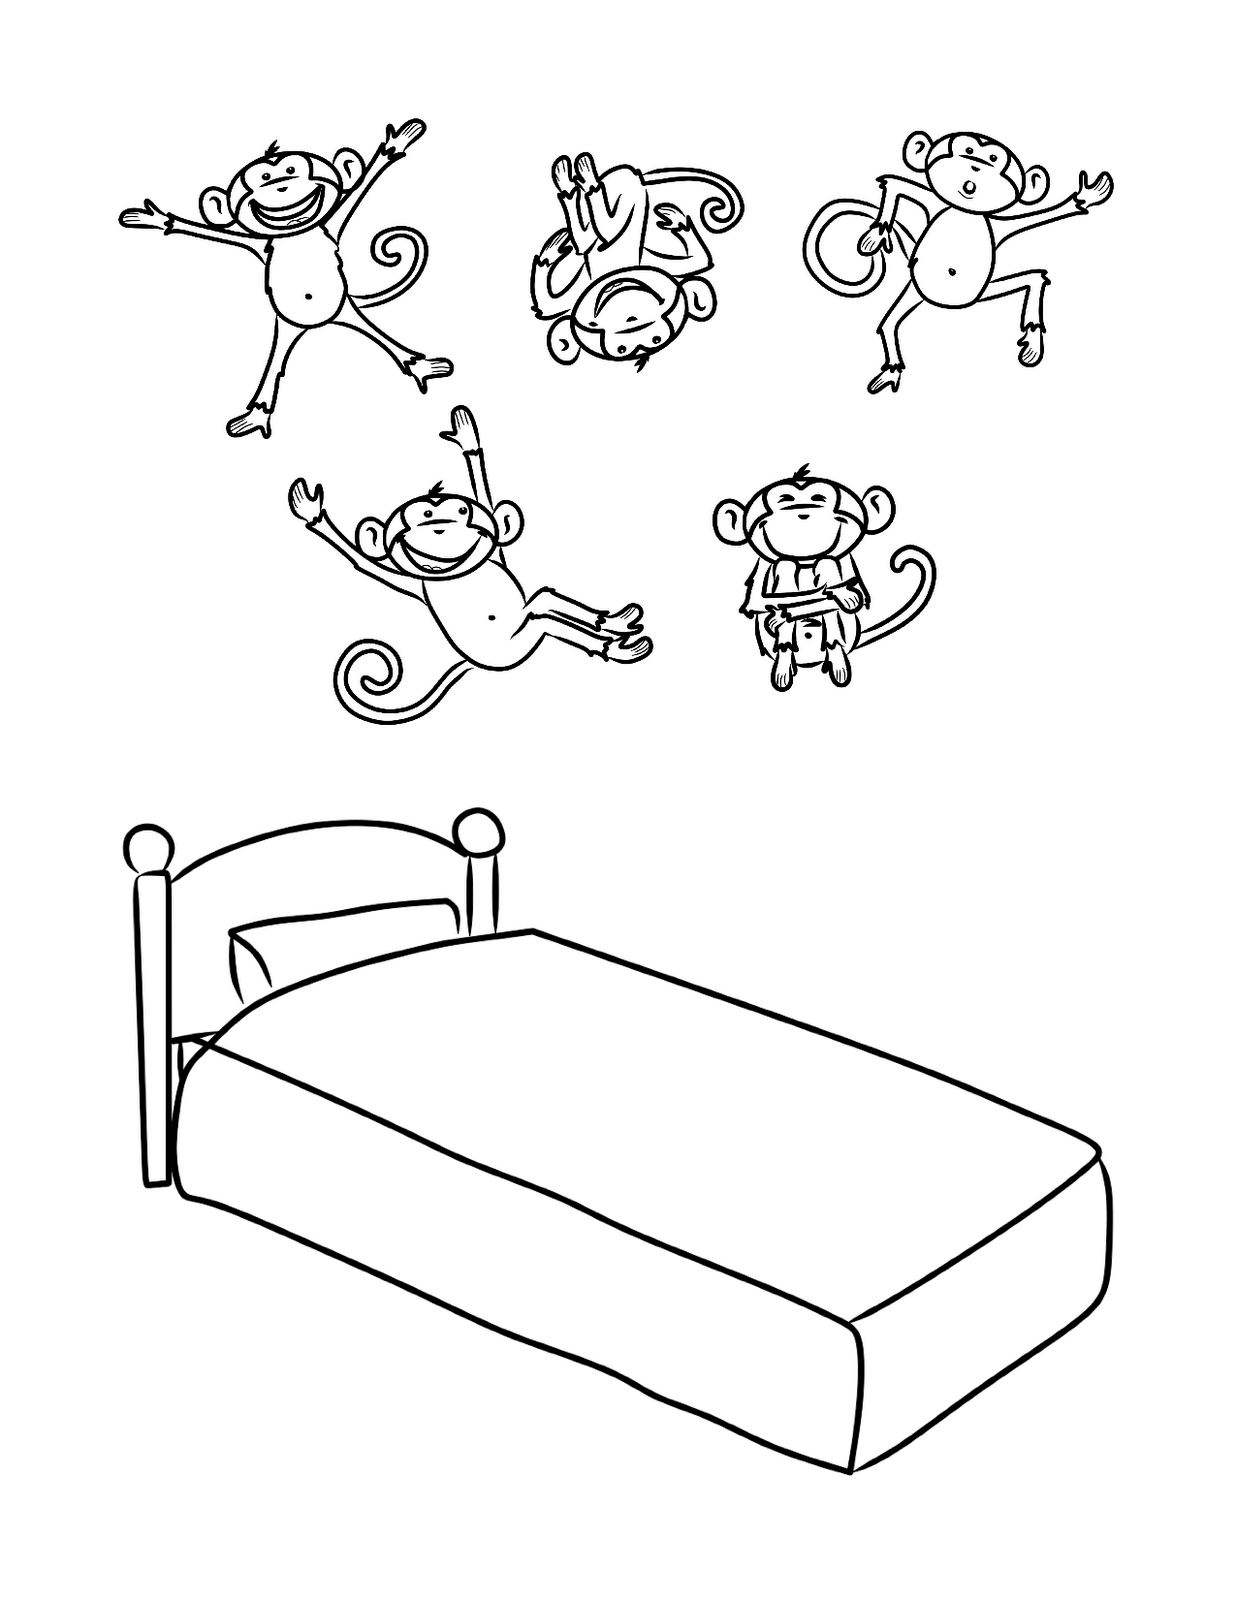 five little monkeys jumping on the bed coloring pages 5 little monkeys